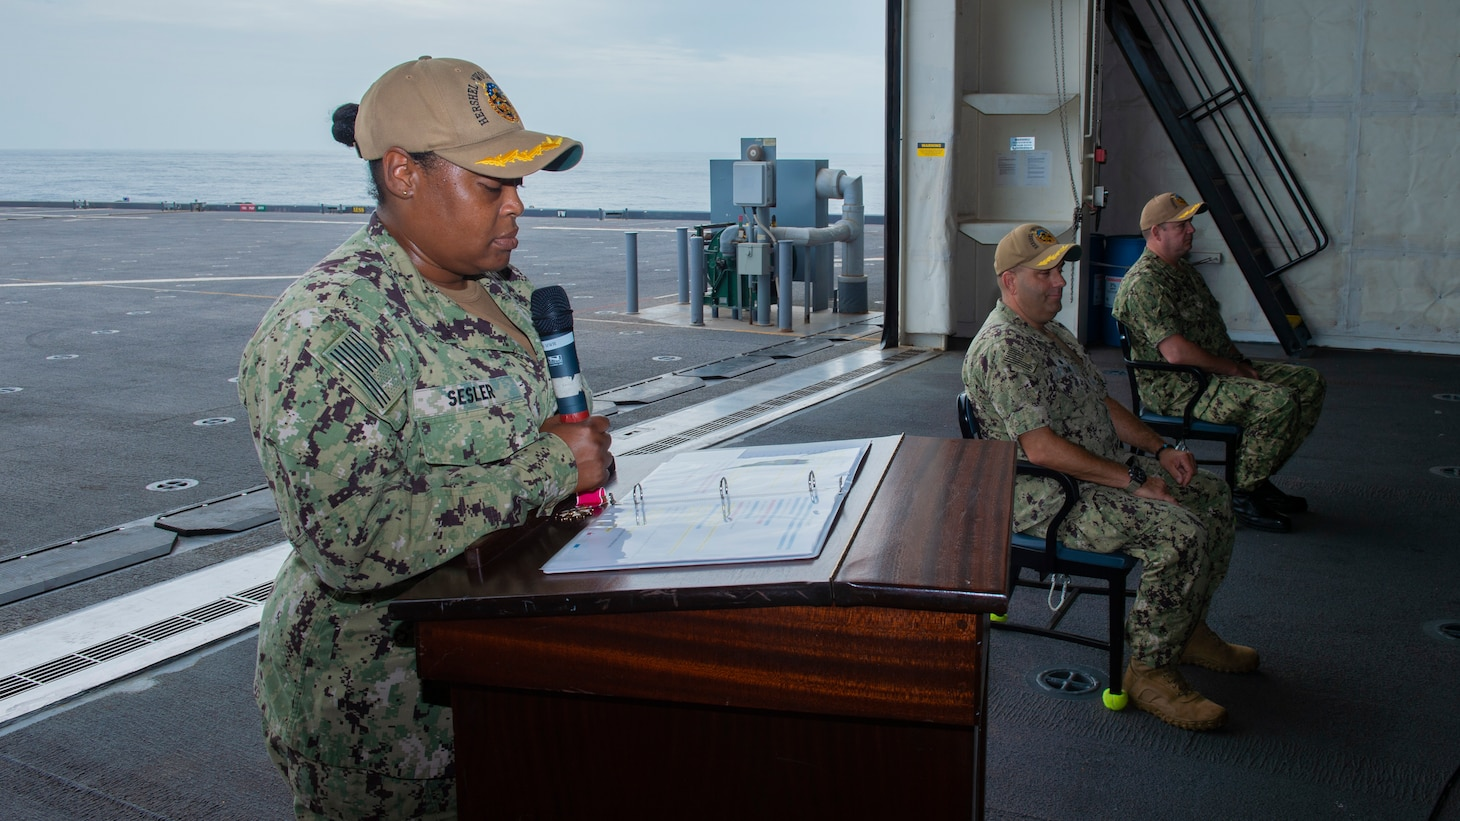 """Executive Officer Ernique Sesler, left, Capt. David Gray, center, and Capt. Chad Graham, right, participate in a change of command ceremony aboard the Expeditionary Sea Base USS Hershel """"Woody"""" Williams (ESB 4), July 25, 2021."""